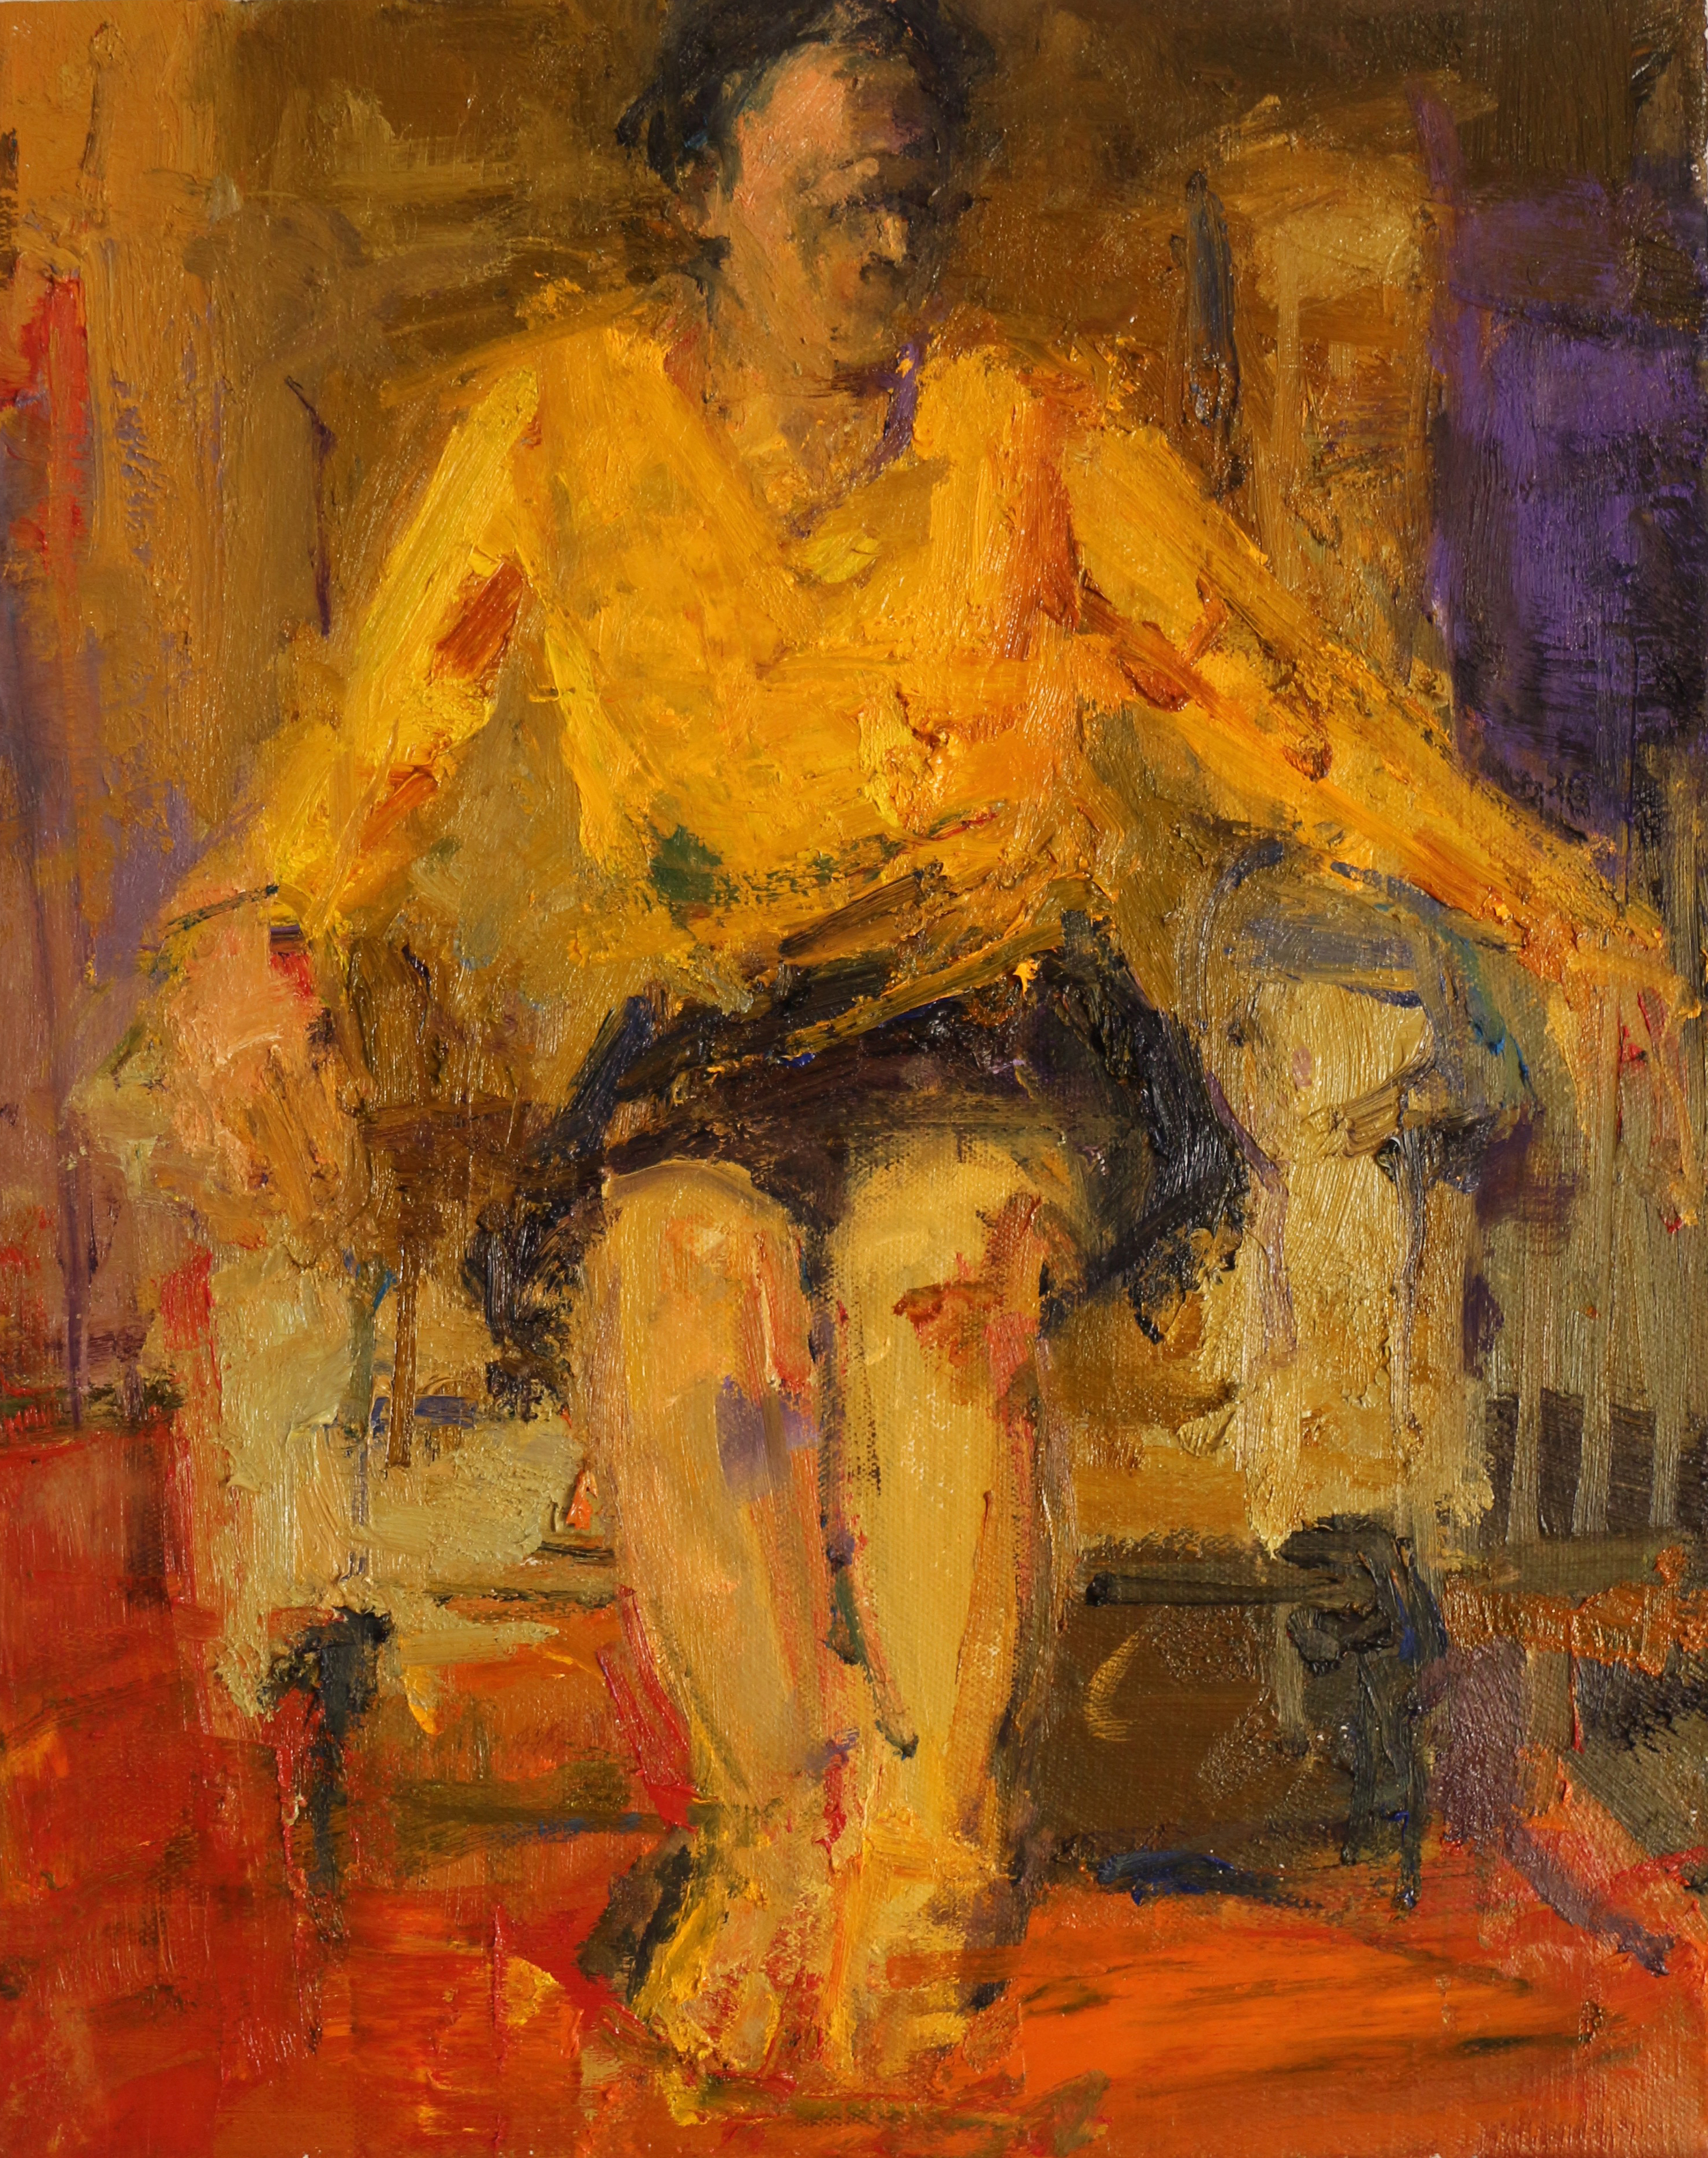 Woman in Yellow Top - Oil on Linen 50 x 40 cm